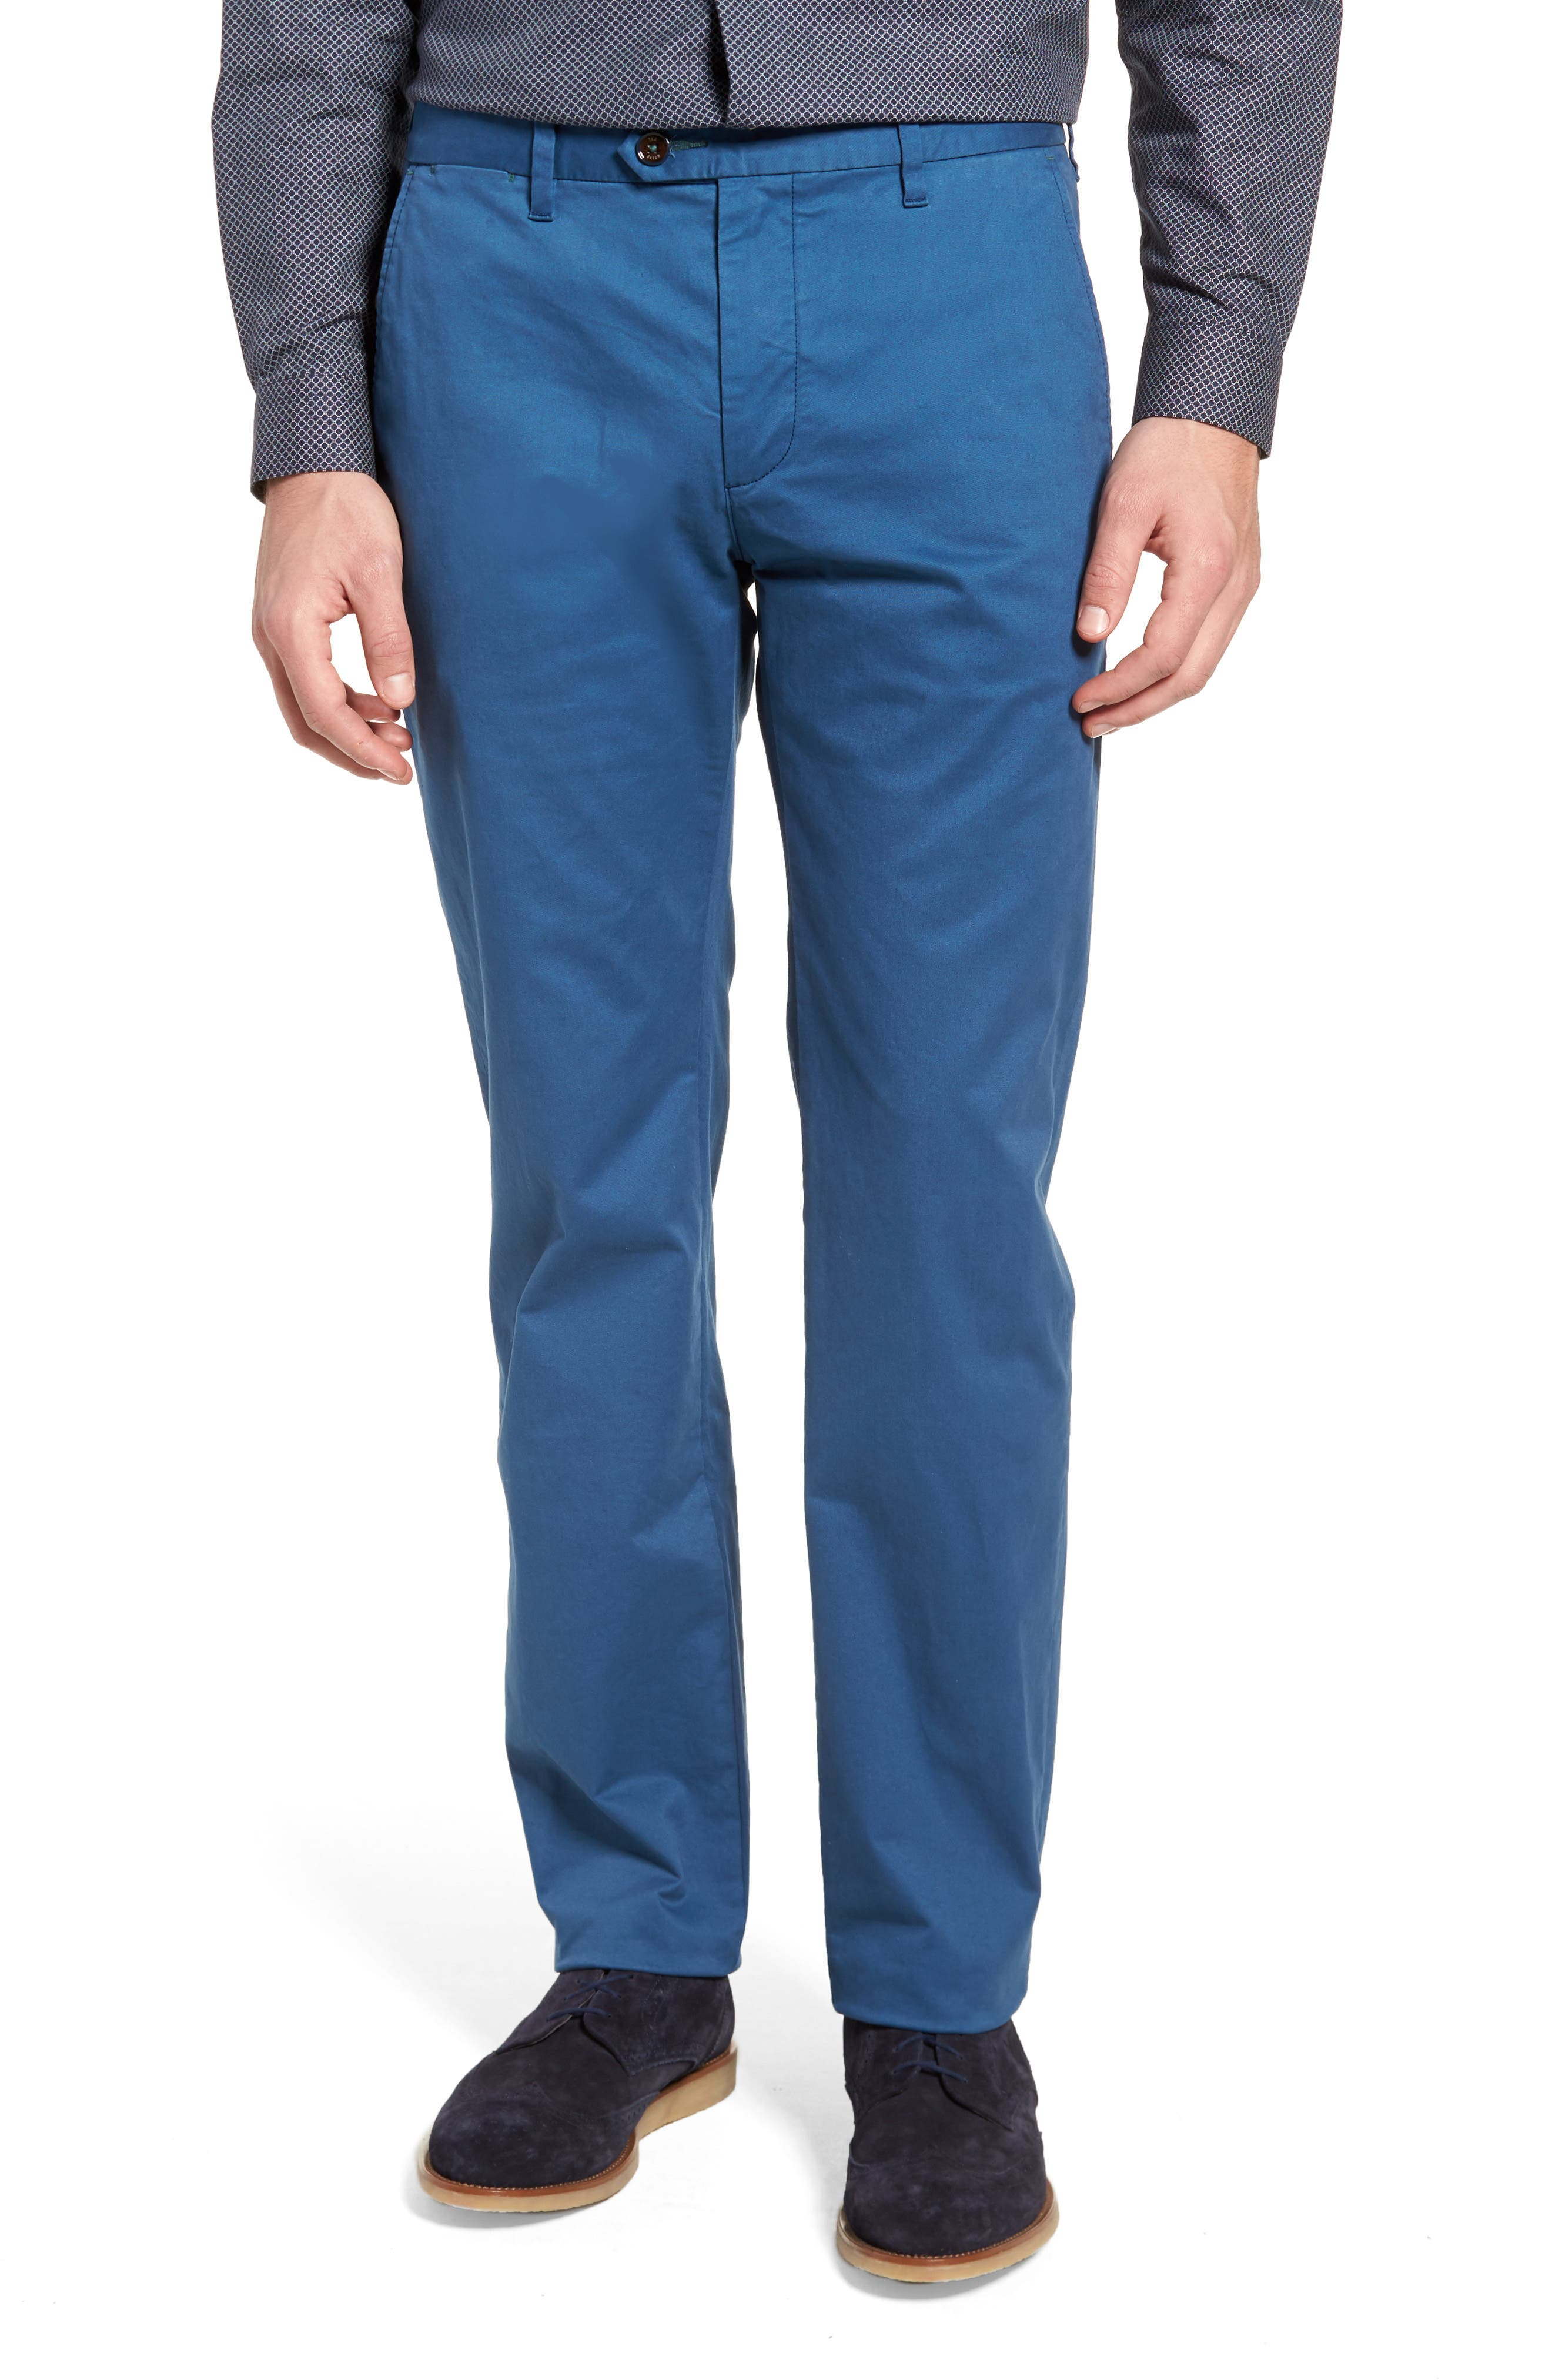 Procor Slim Fit Chino Pants,                         Main,                         color, Navy